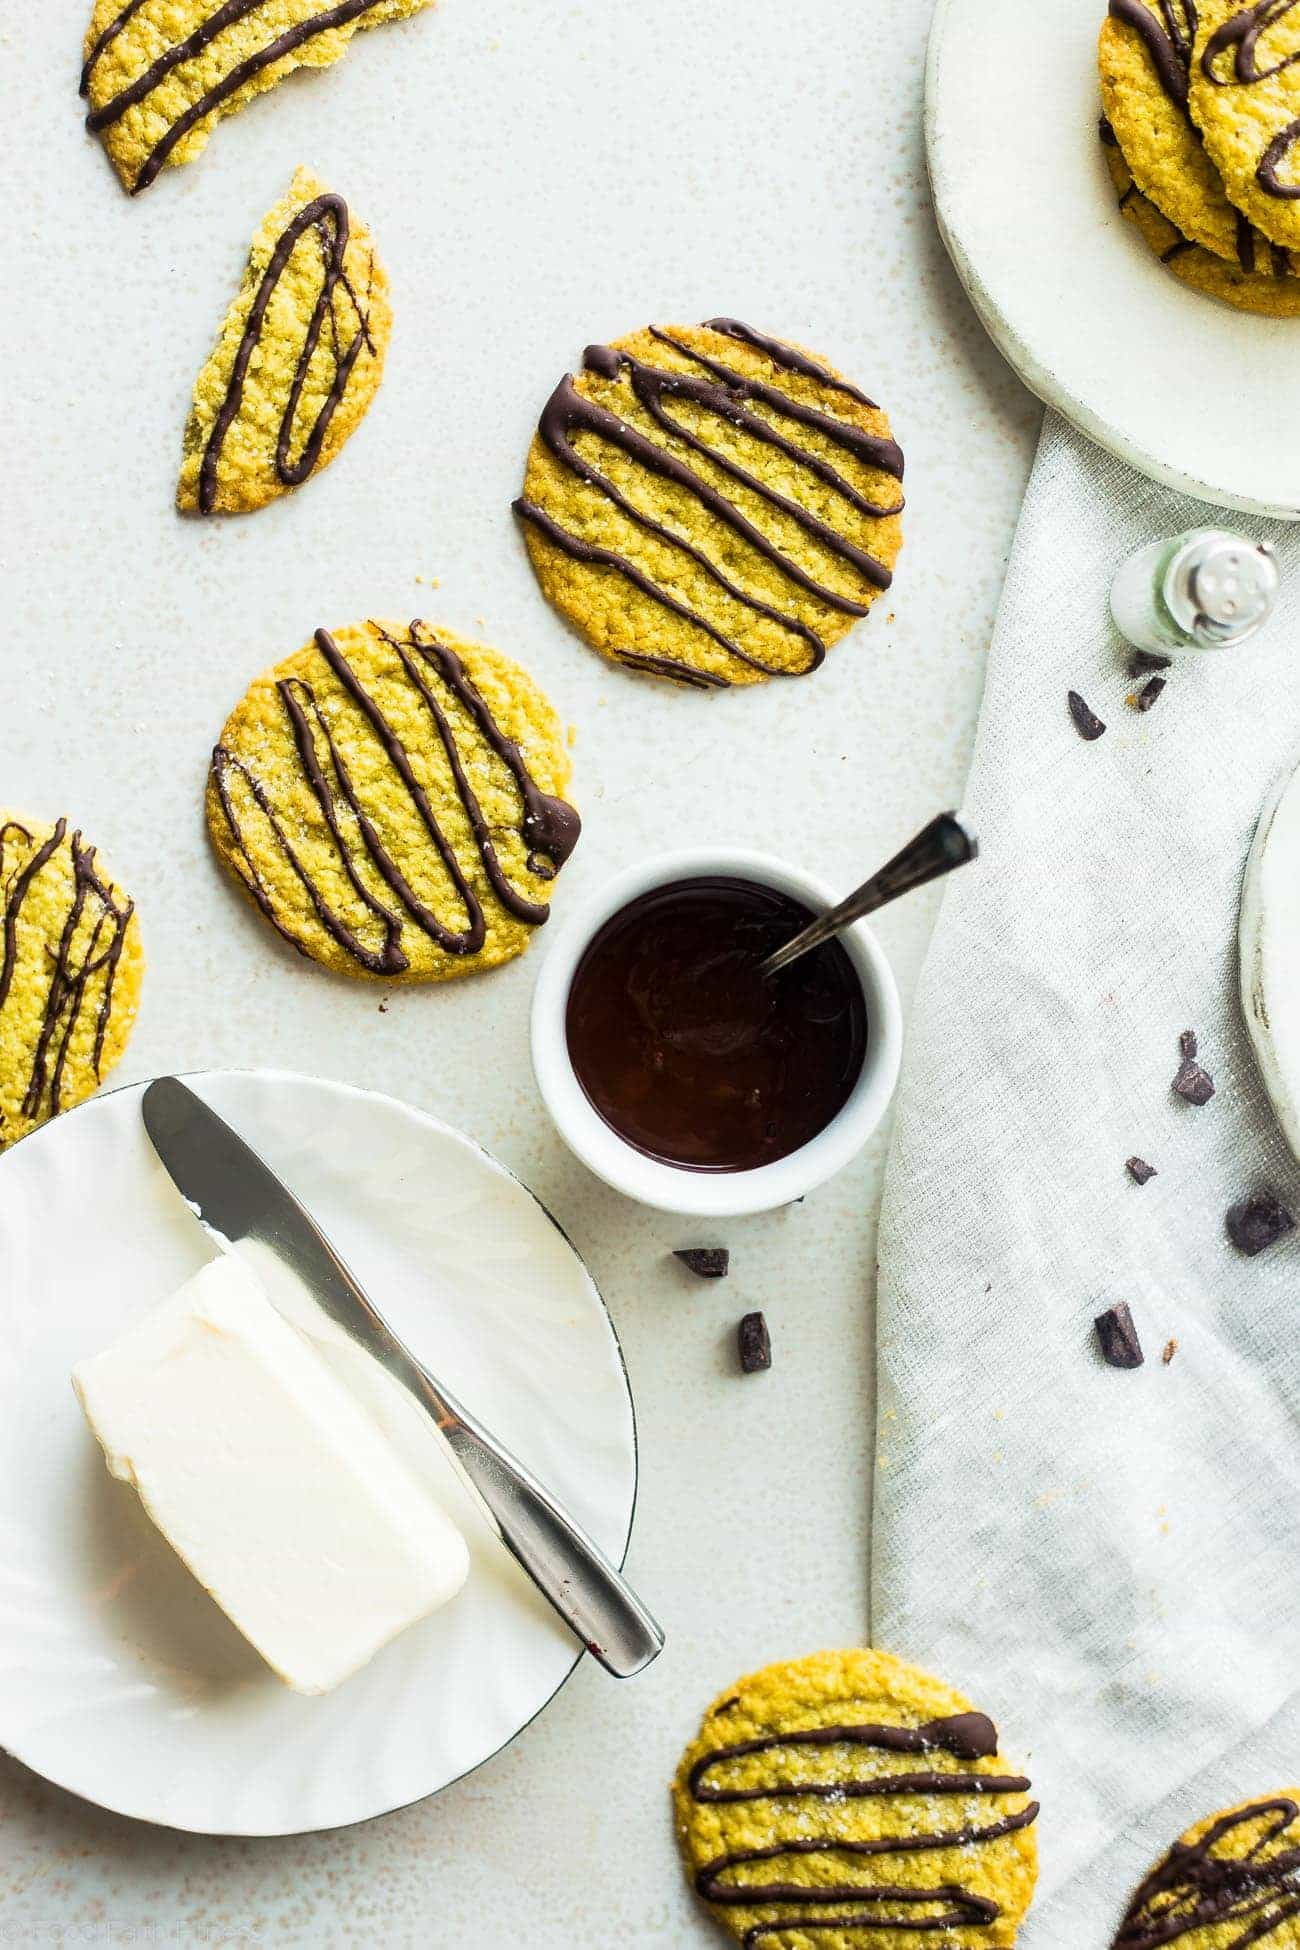 Gluten Free Salted Chocolate Pistachio Whipped Shortbread Cookies - These 5 ingredient, low carb and gluten free shortbread cookies are salty-sweet and melt in your mouth! The perfect, healthy Christmas cookie! | Foodfaithfitness.com | @FoodFaithFit